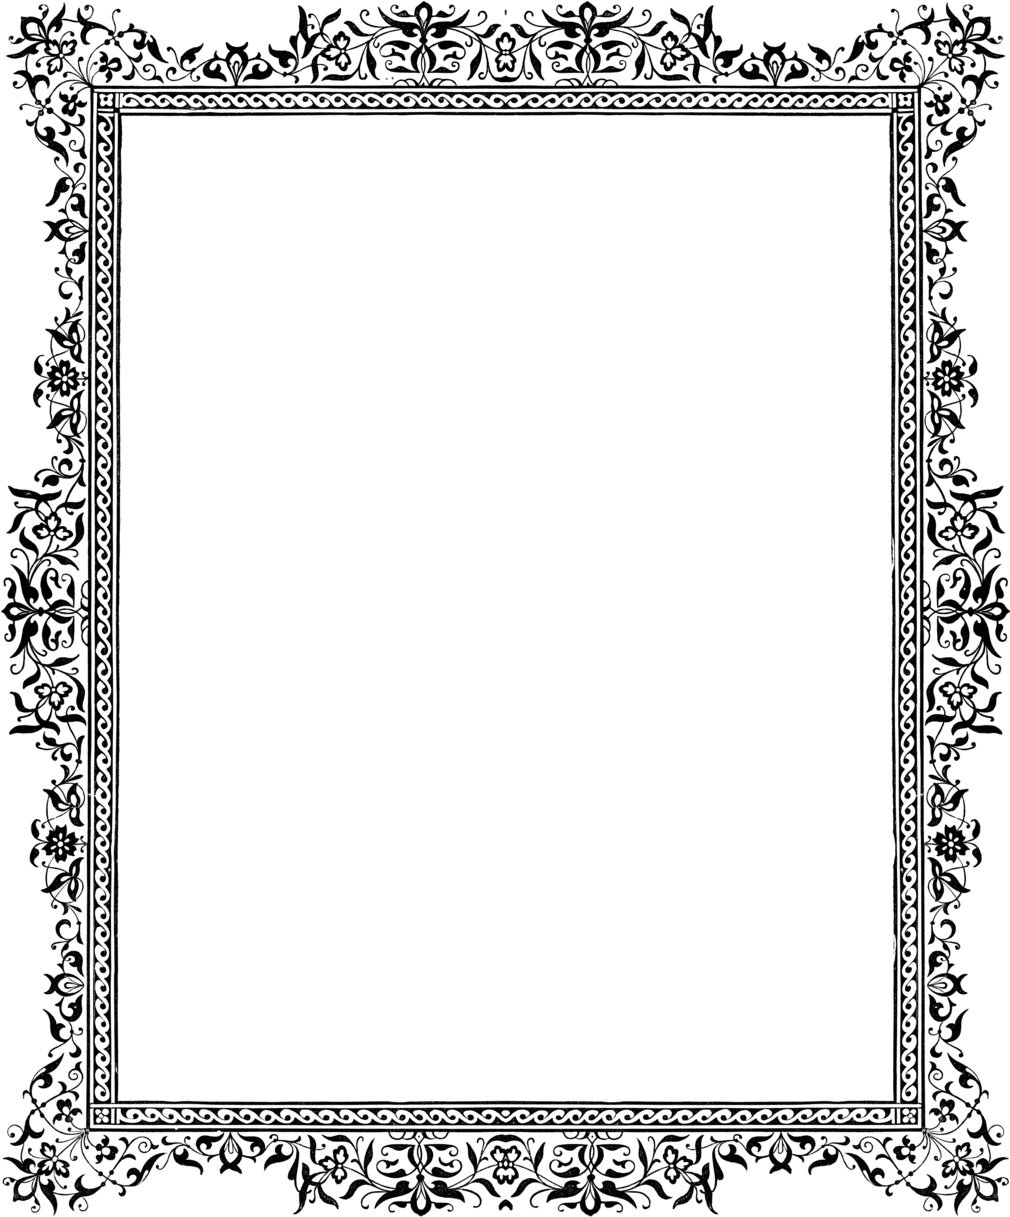 Free Decorative Borders Clip Art